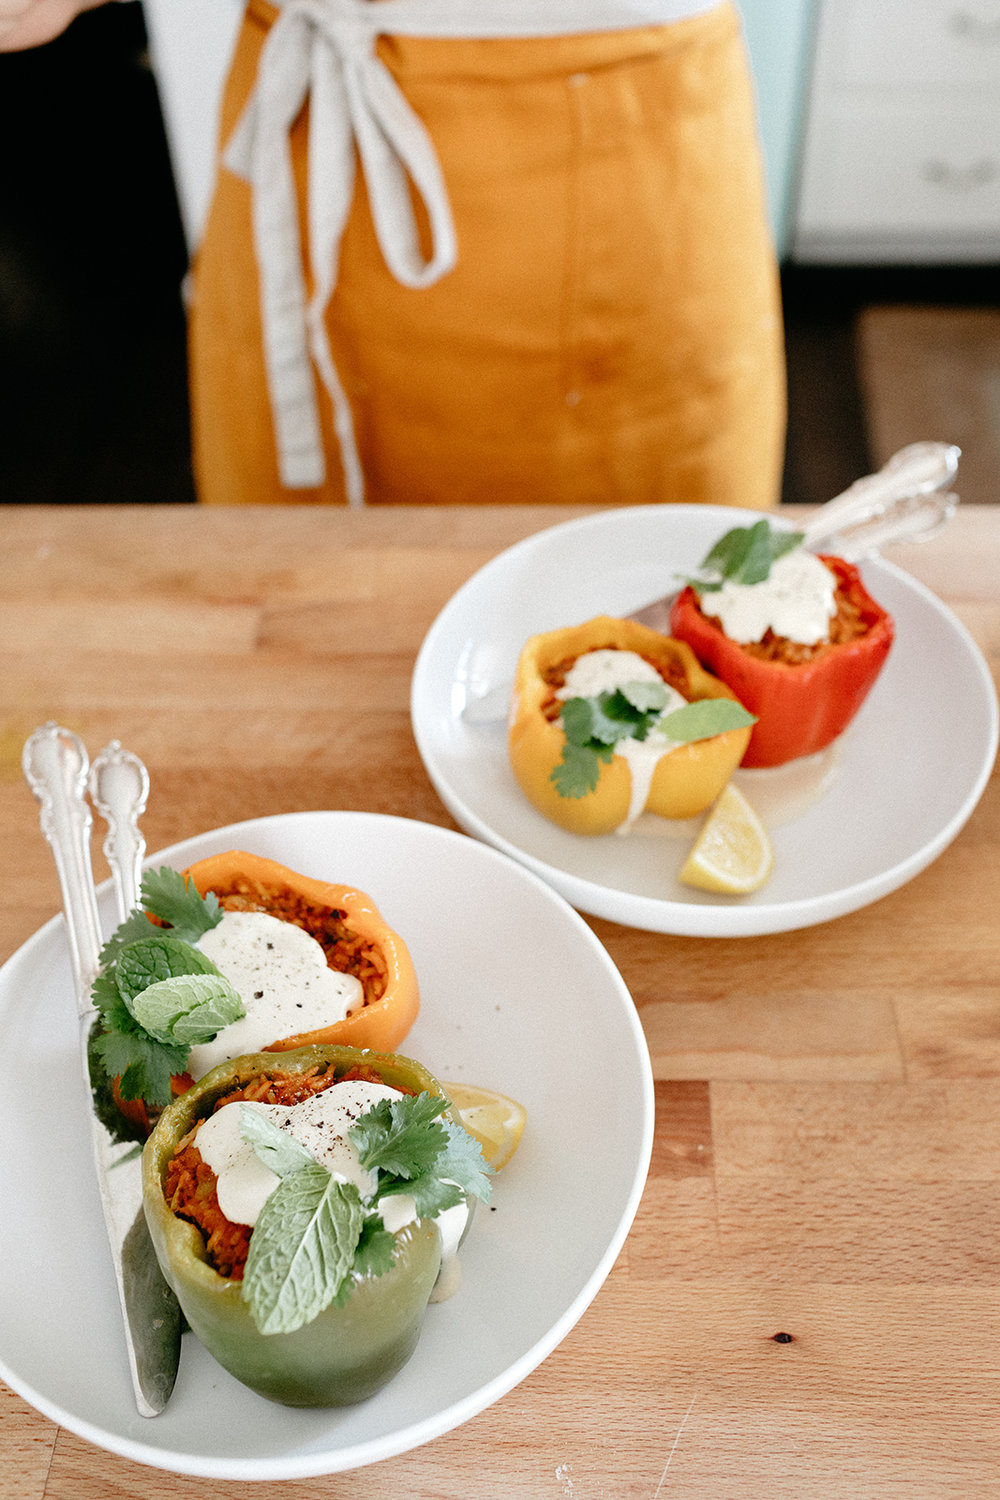 molly-yeh-shawarma-stuffed-peppers-11.jpg